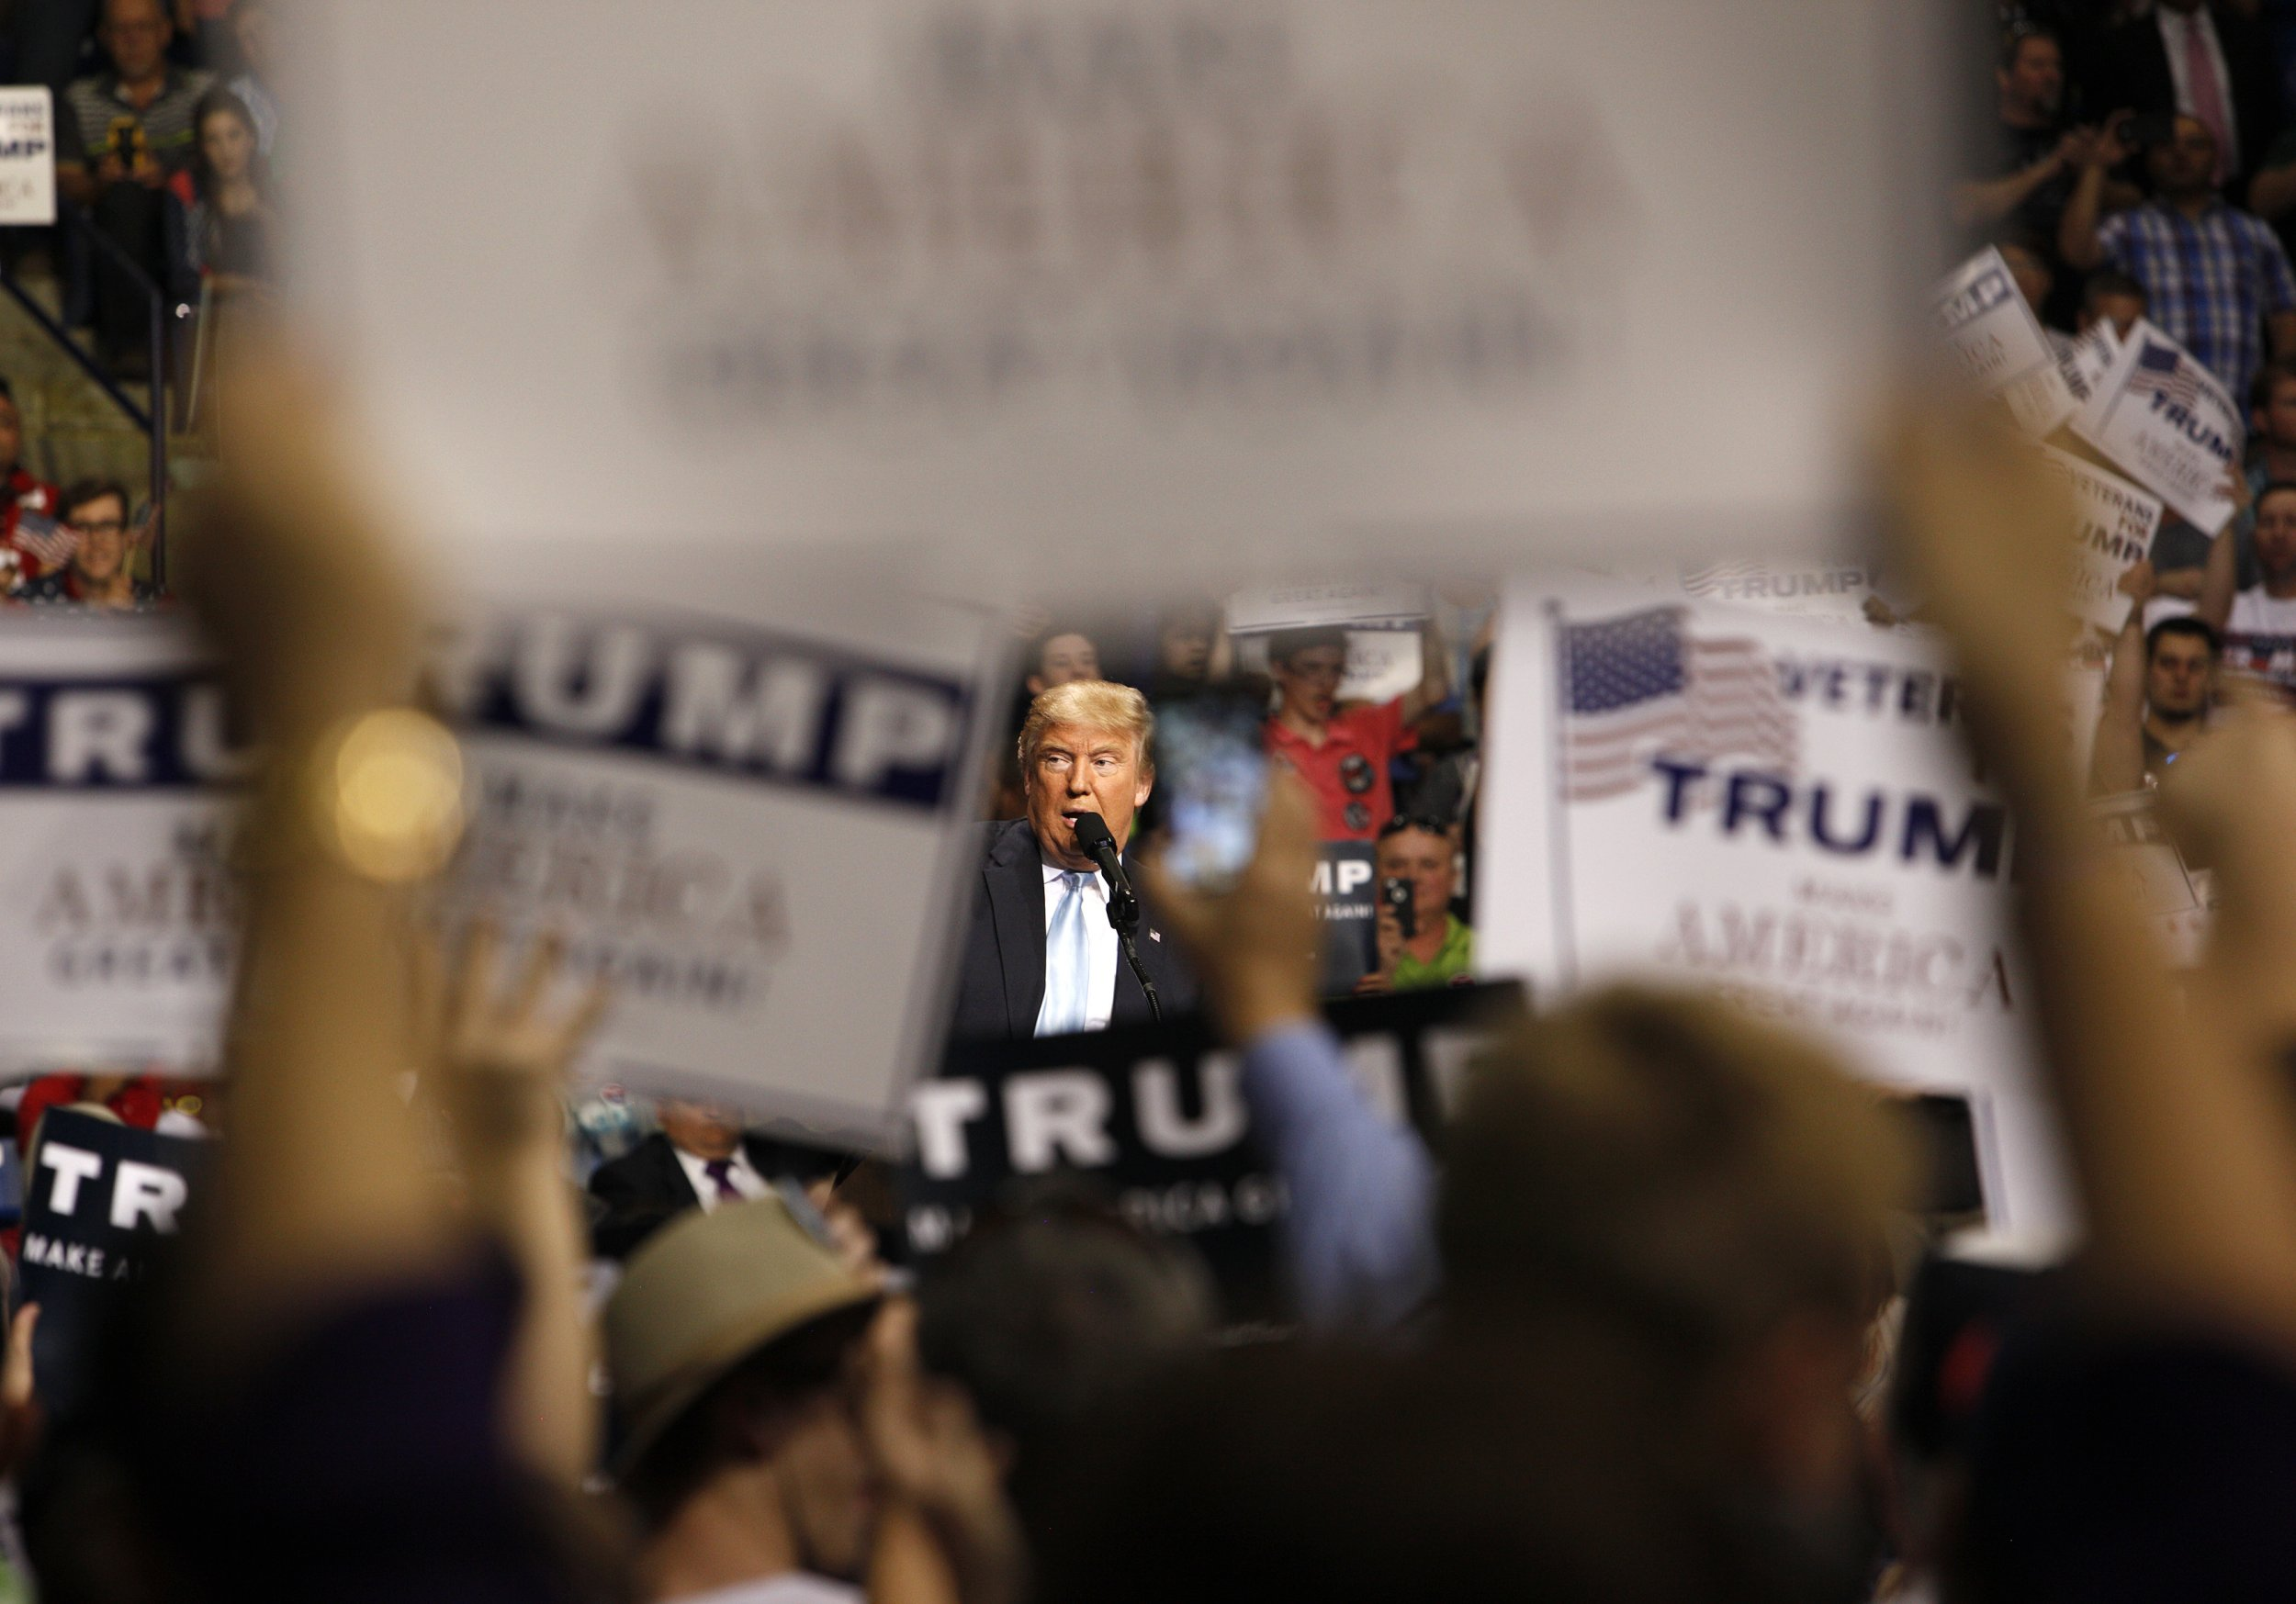 image Trump supporter wife celebrates with bbc staff at convention